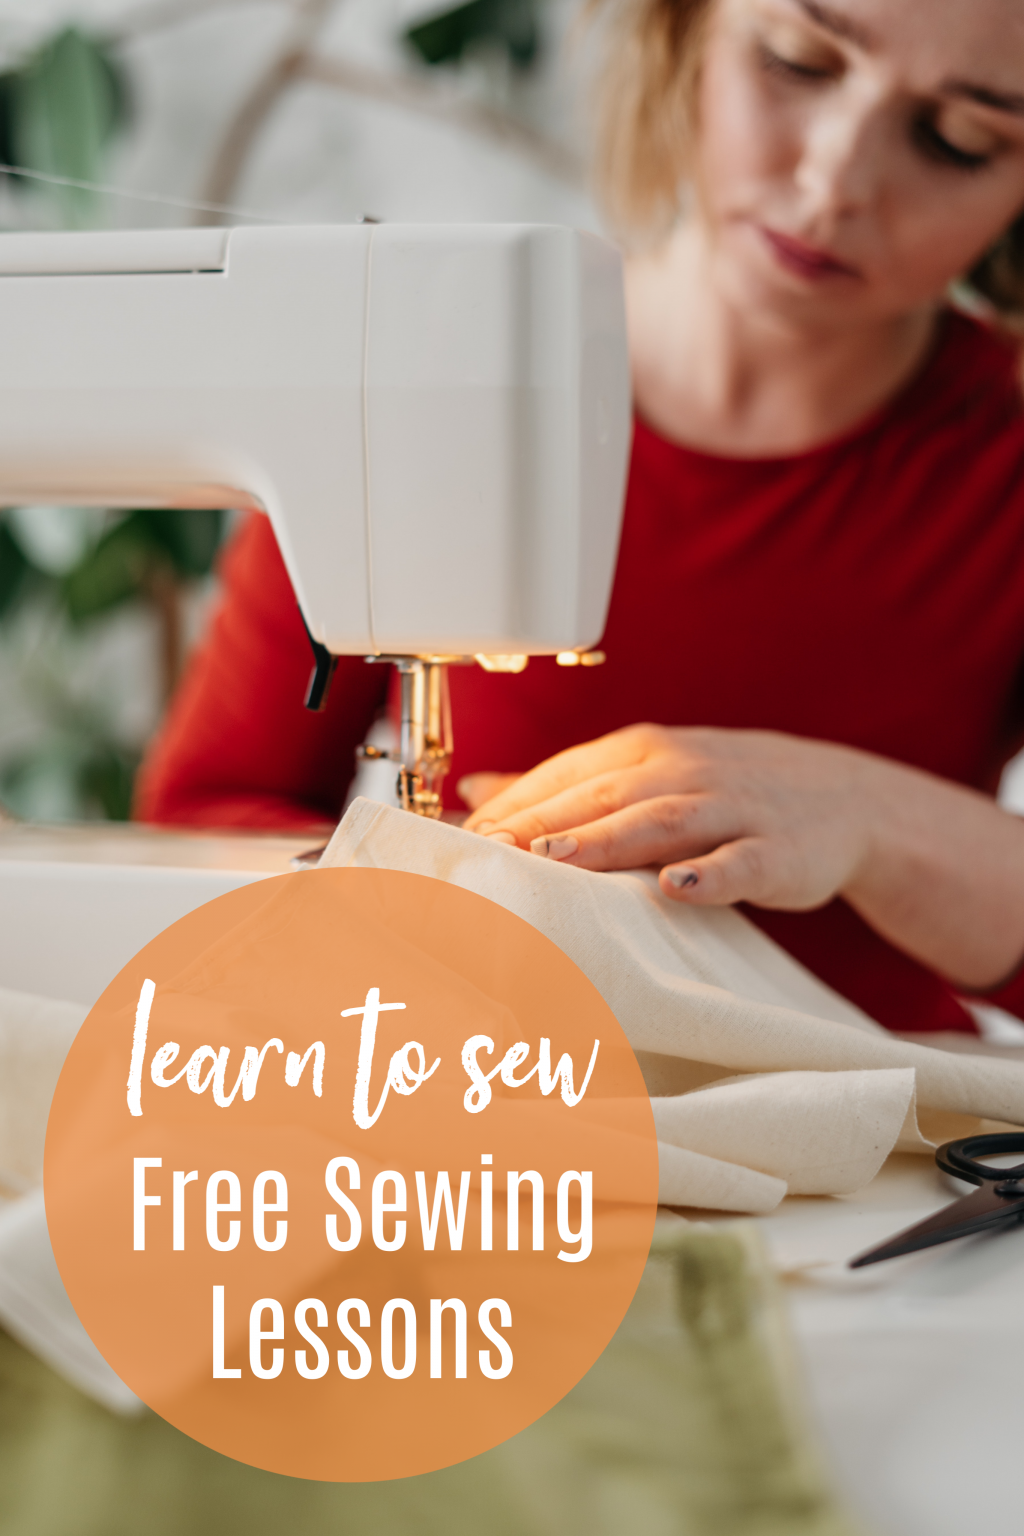 Learn to Sew: Free Online Sewing Classes - Crazy Little Projects